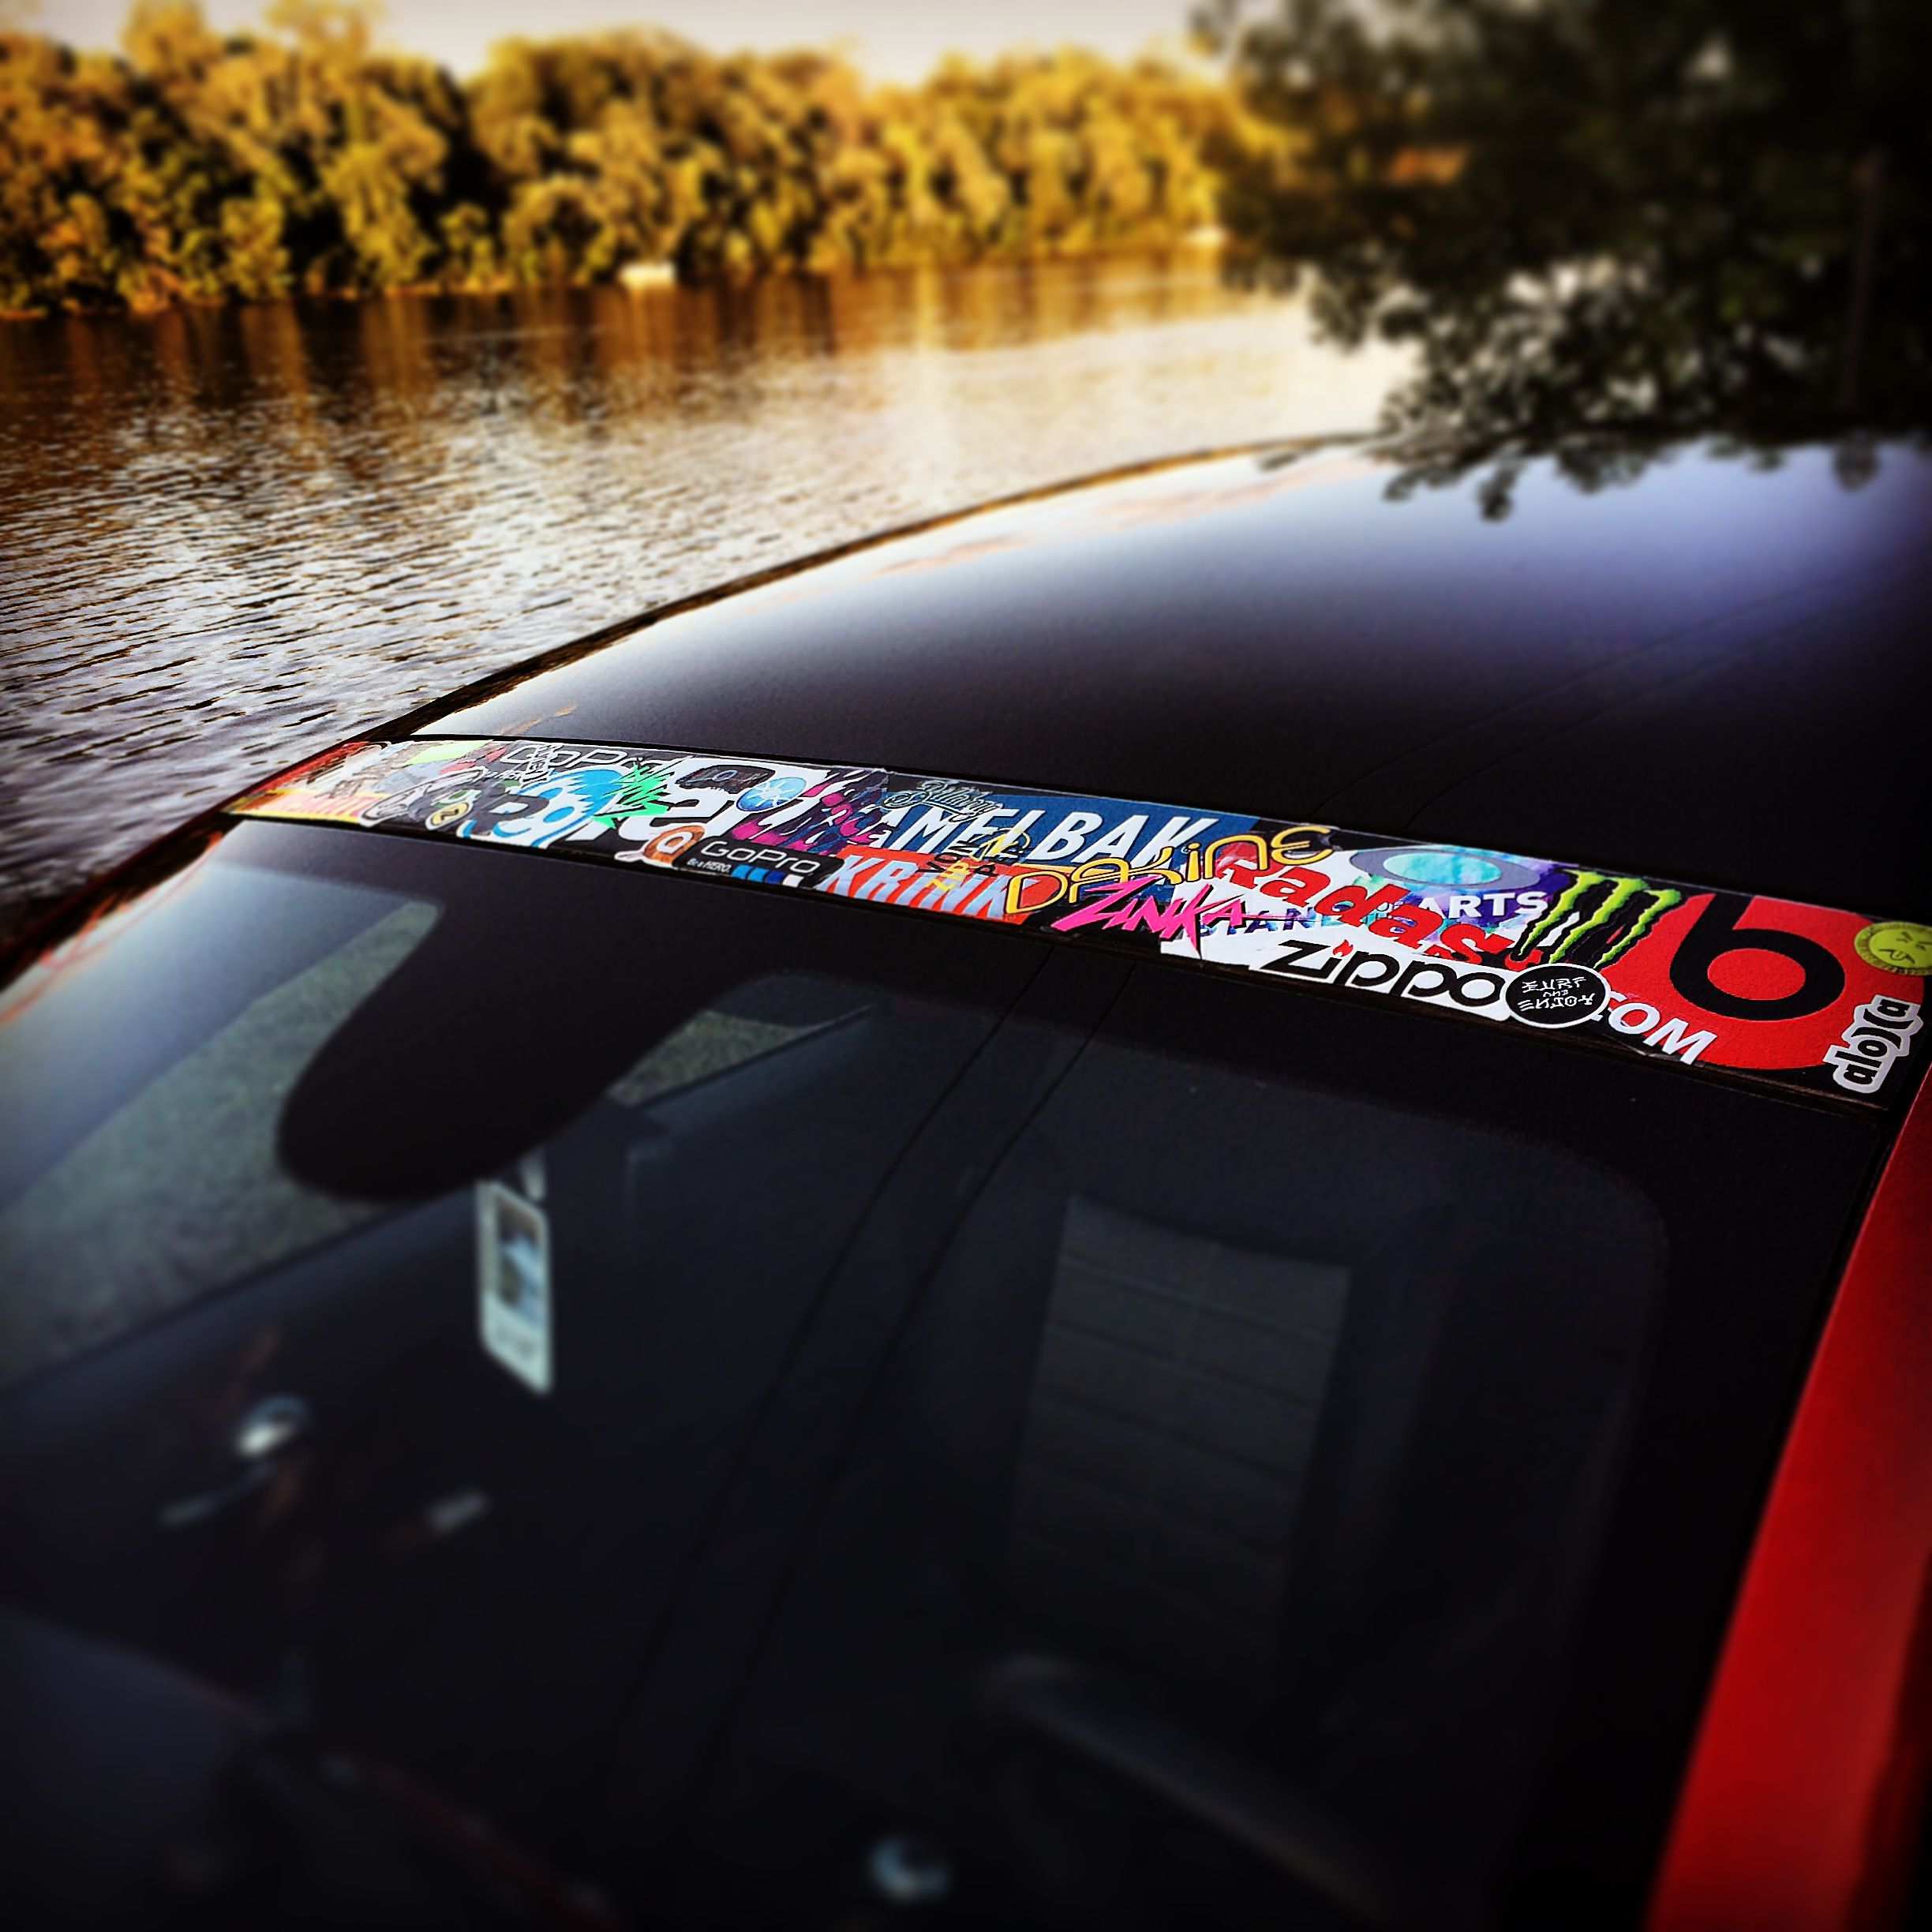 Stickerbombed fiat500 checkout stickerbomb bubblefree vinylwrap from http